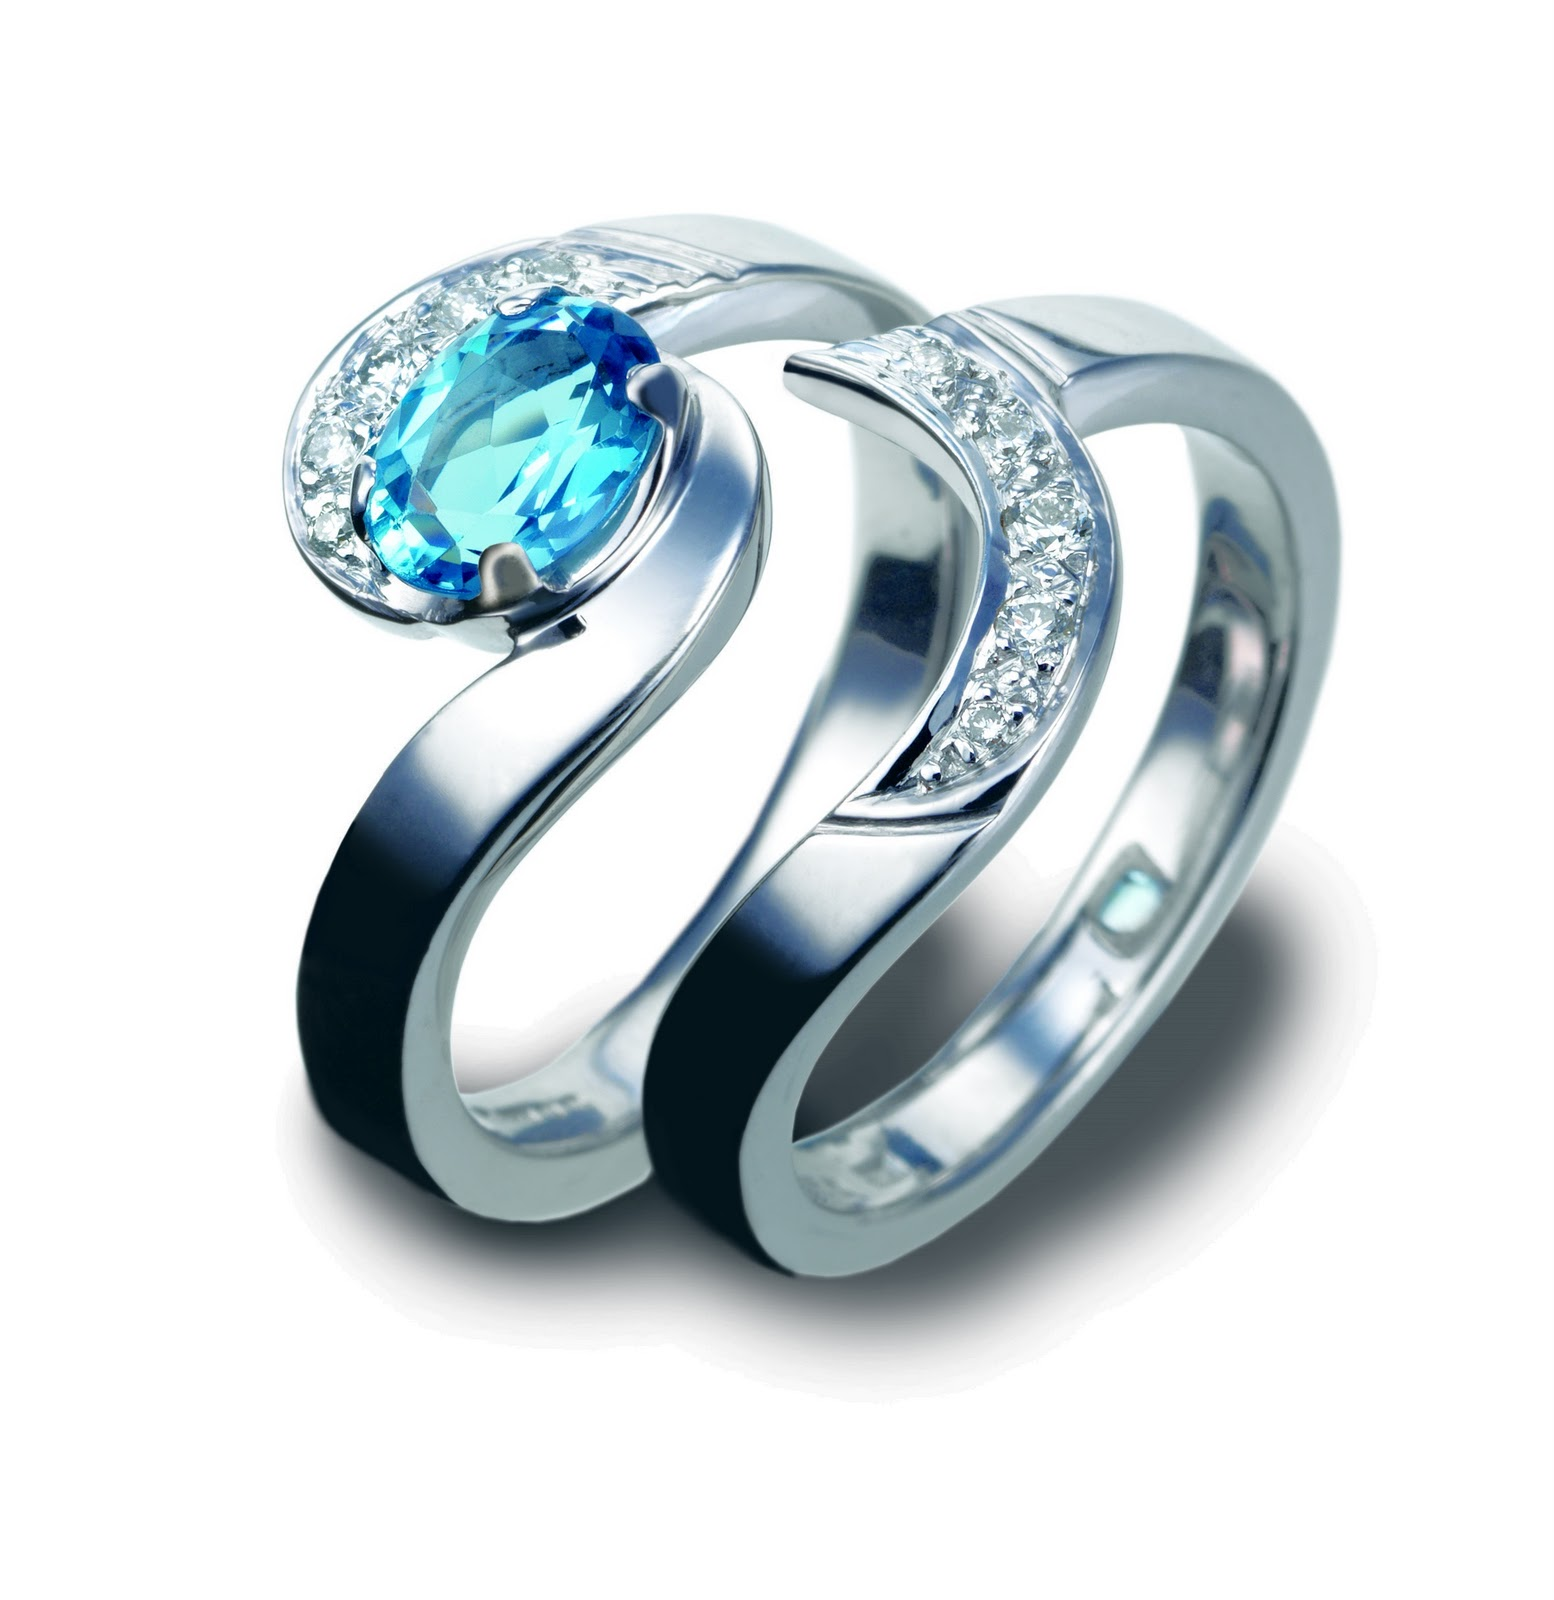 Ocean Inspired Engagement Rings Wedding Rings Diamond Marriage Life